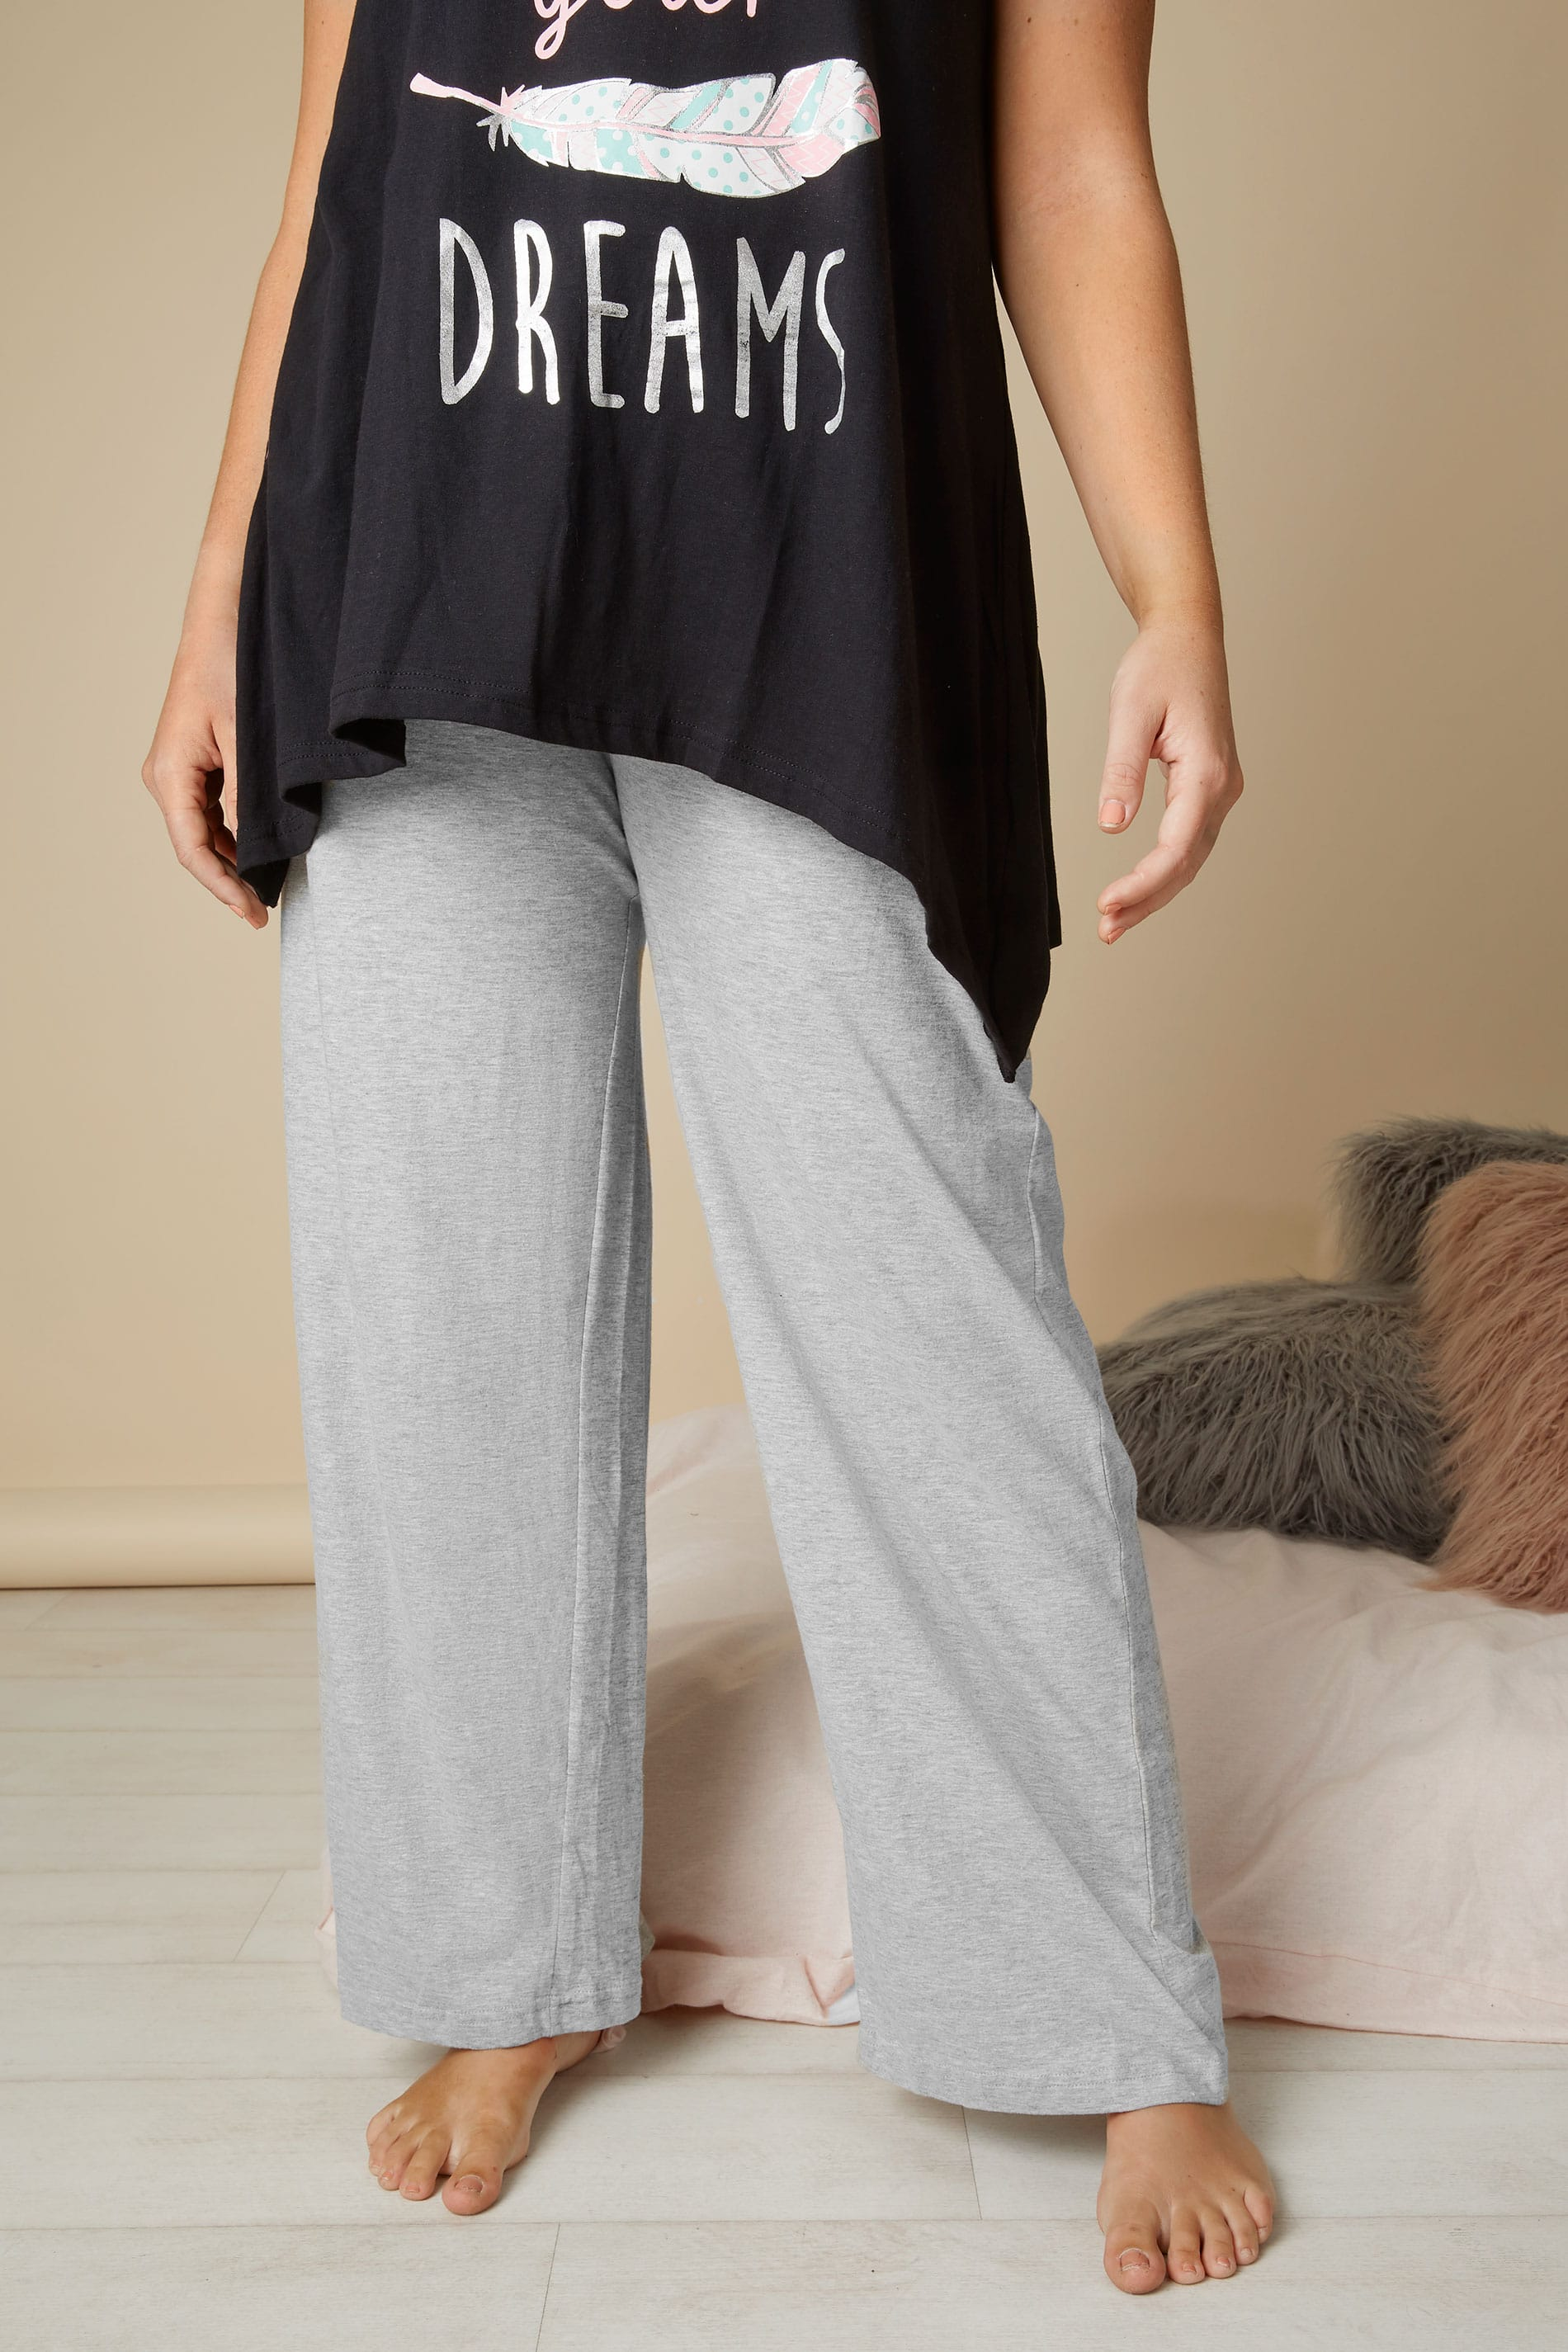 pantalon de pyjama gris en coton taille 44 60. Black Bedroom Furniture Sets. Home Design Ideas